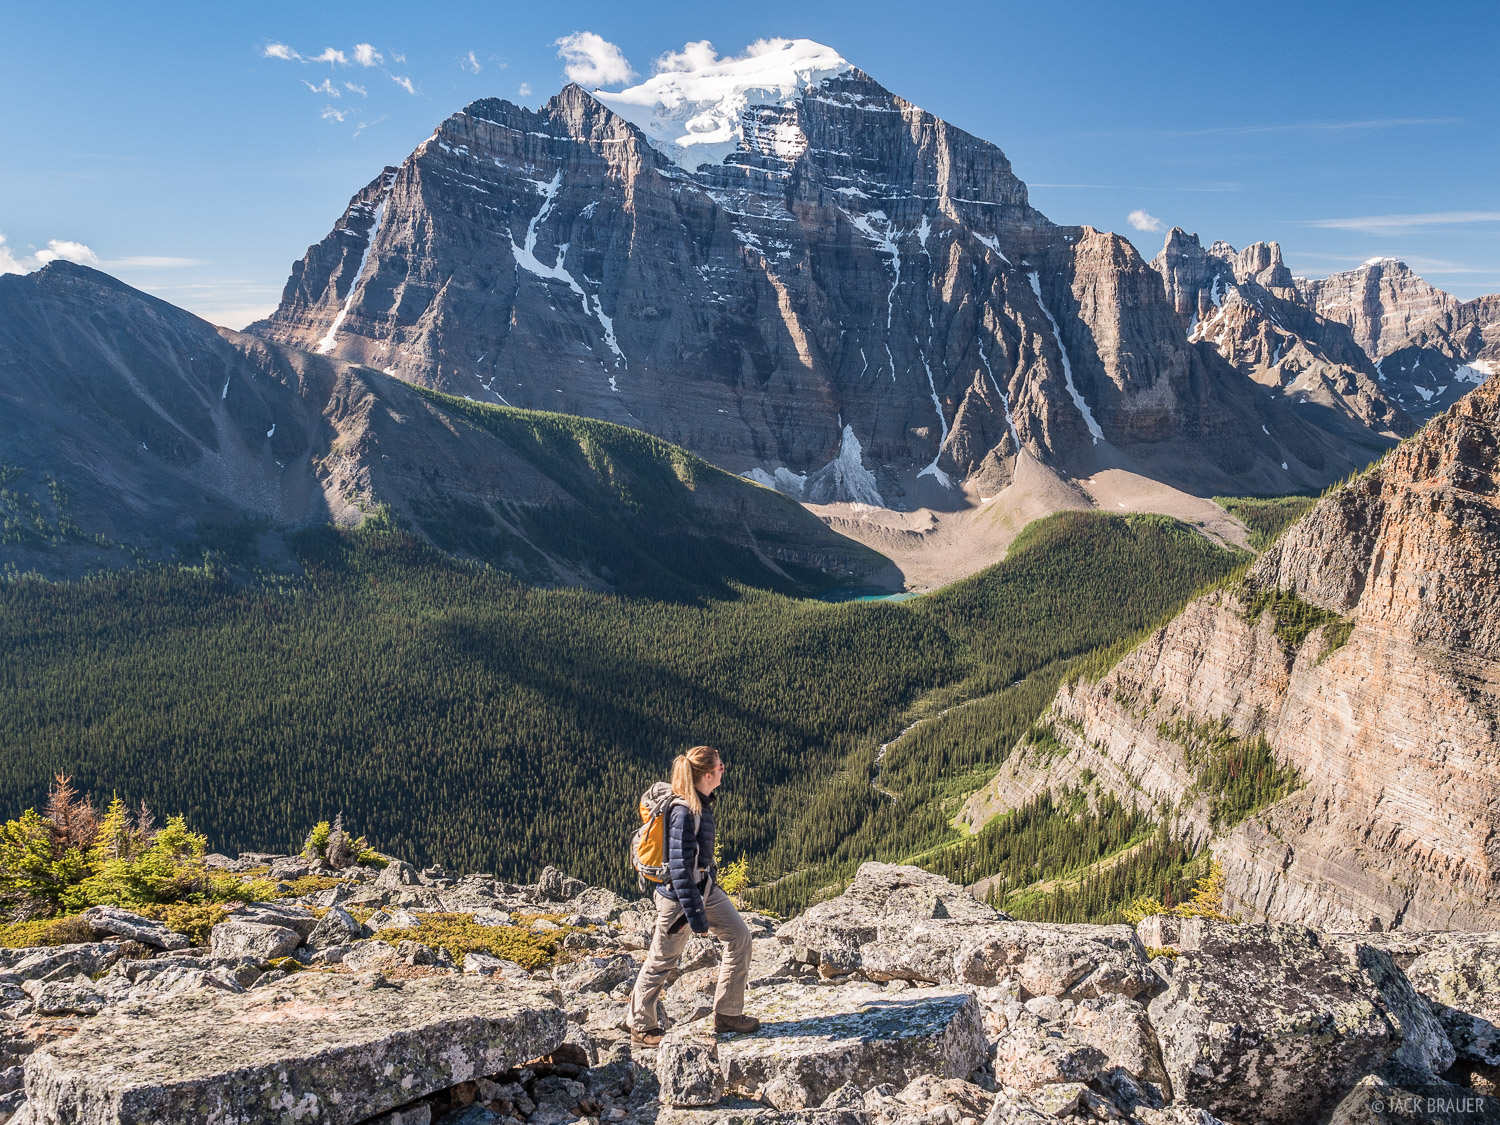 Alberta, Banff National Park, Canada, Canadian Rockies, Mount Temple, Saddle Mountain, hiking, photo